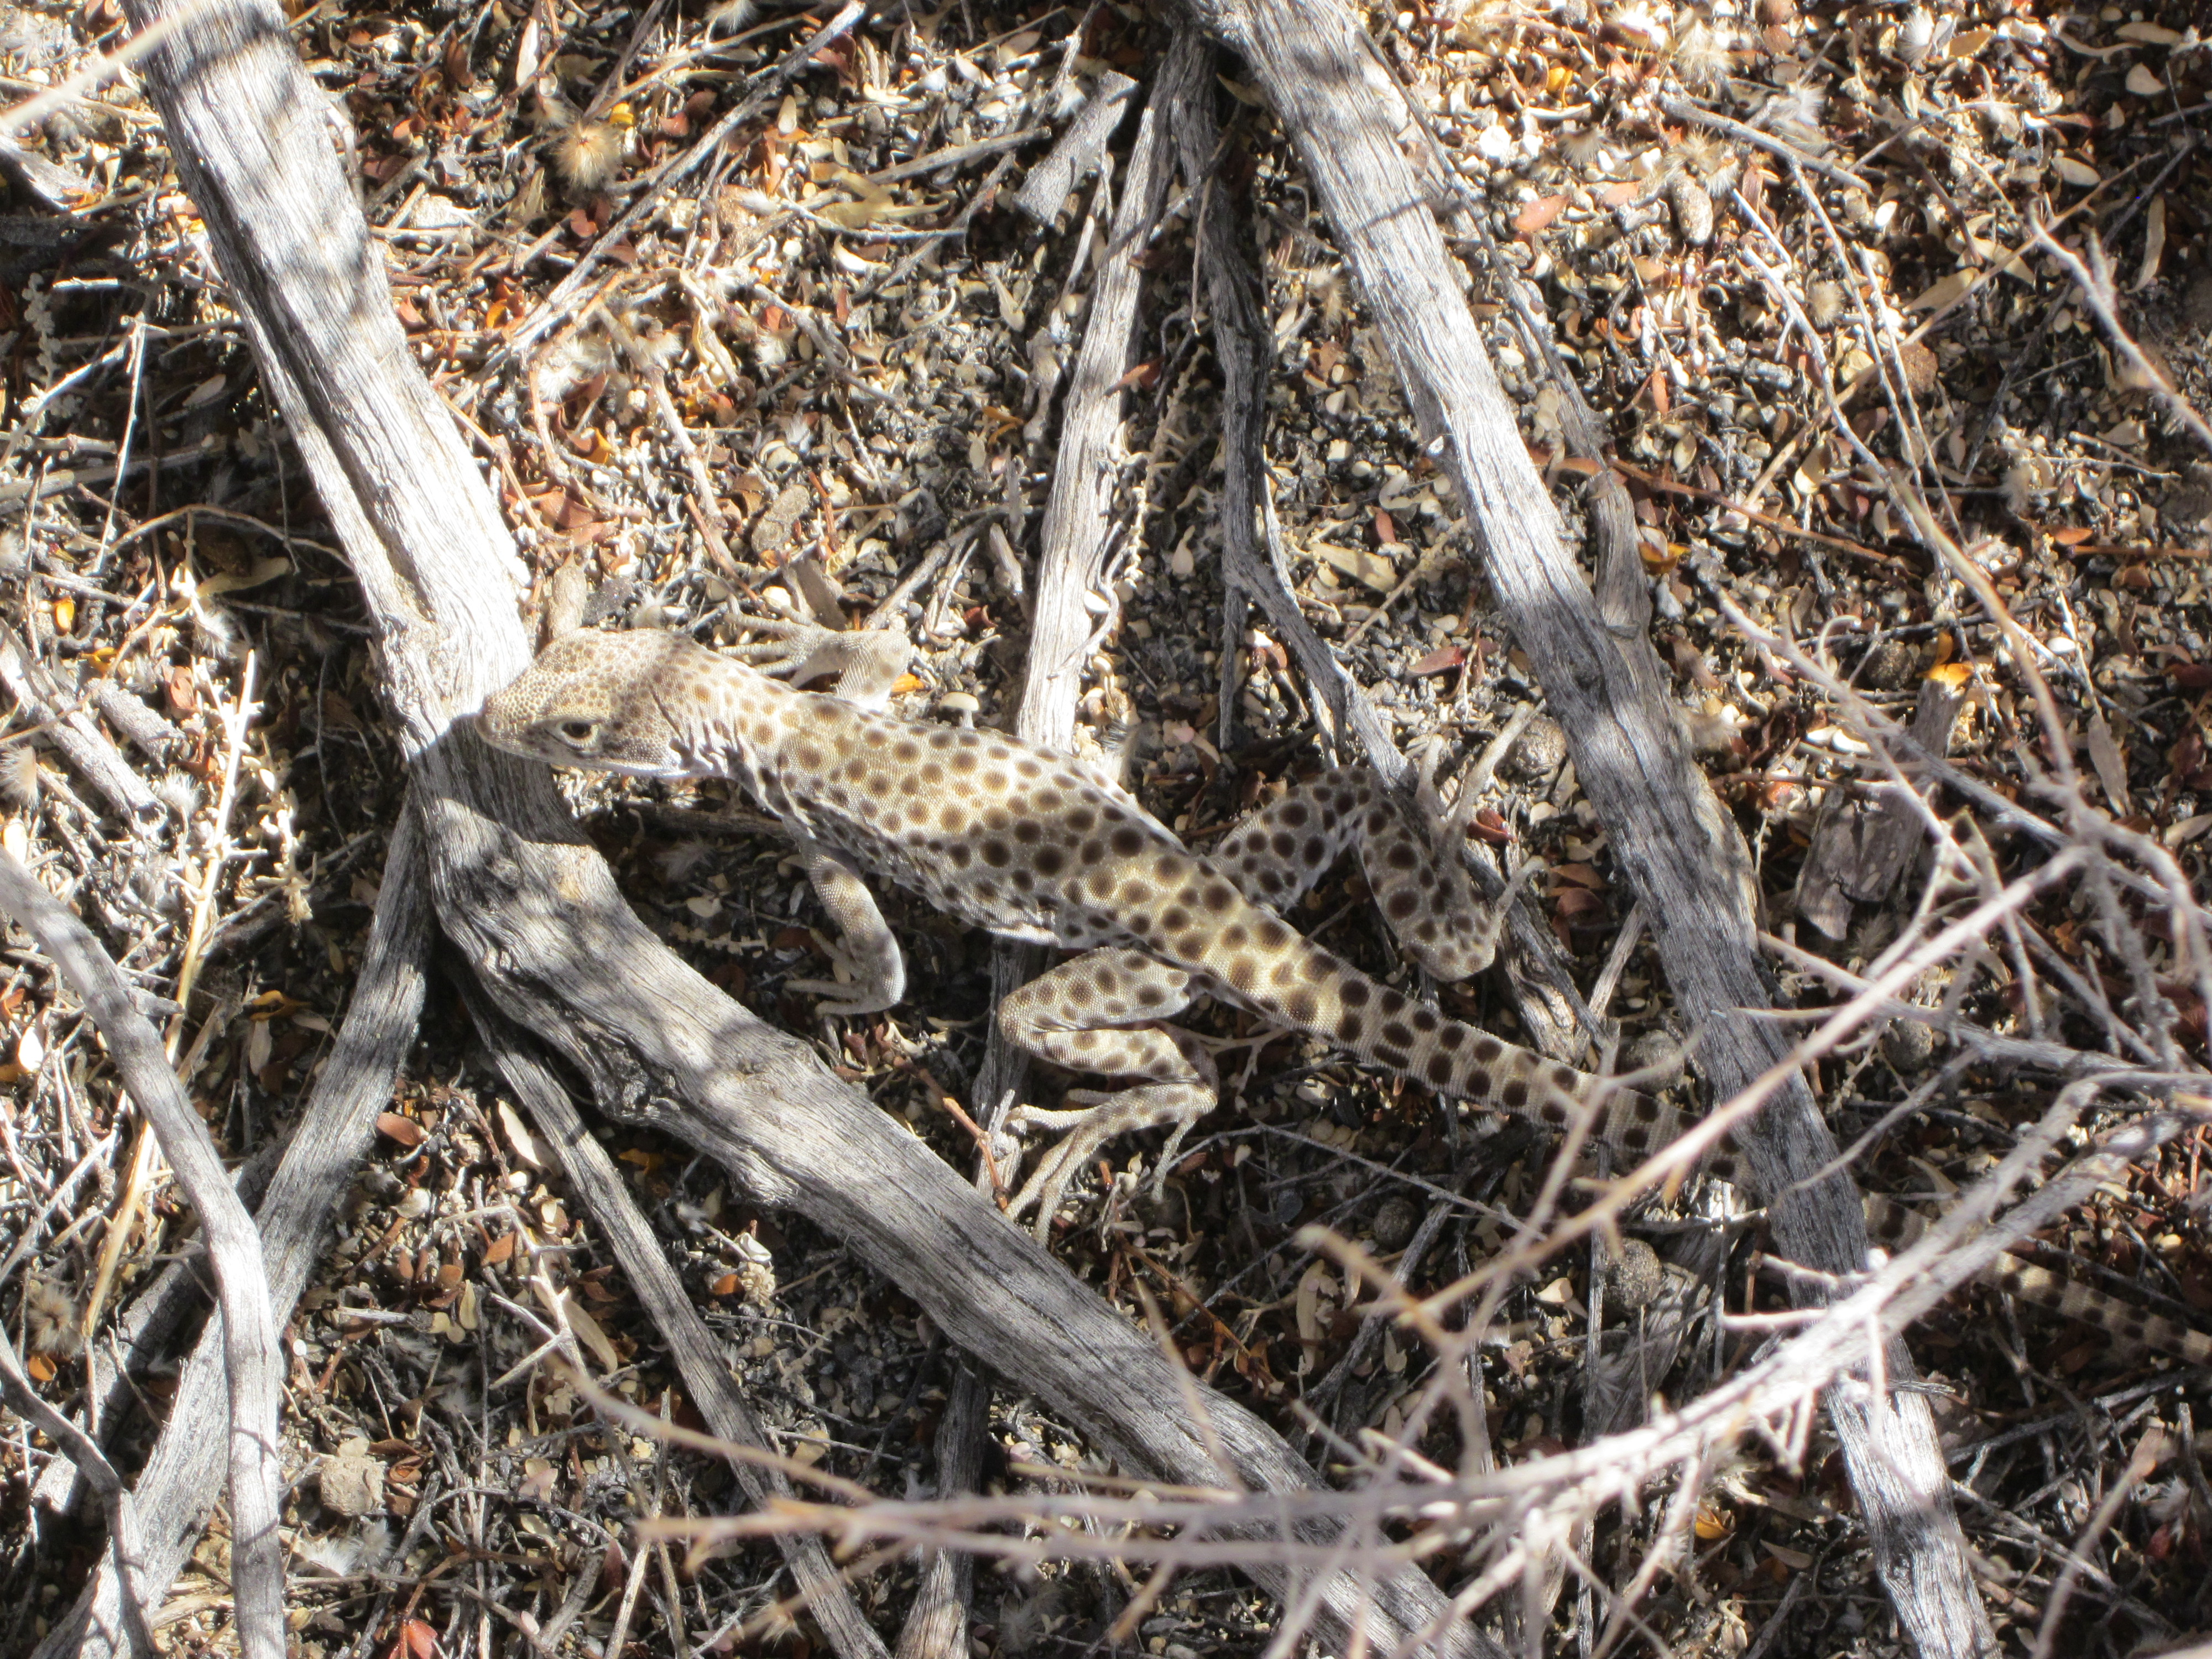 A long-nosed leopard lizard. The spots and this lizard's appetite for large prey make this lizard's name an appropriate one.